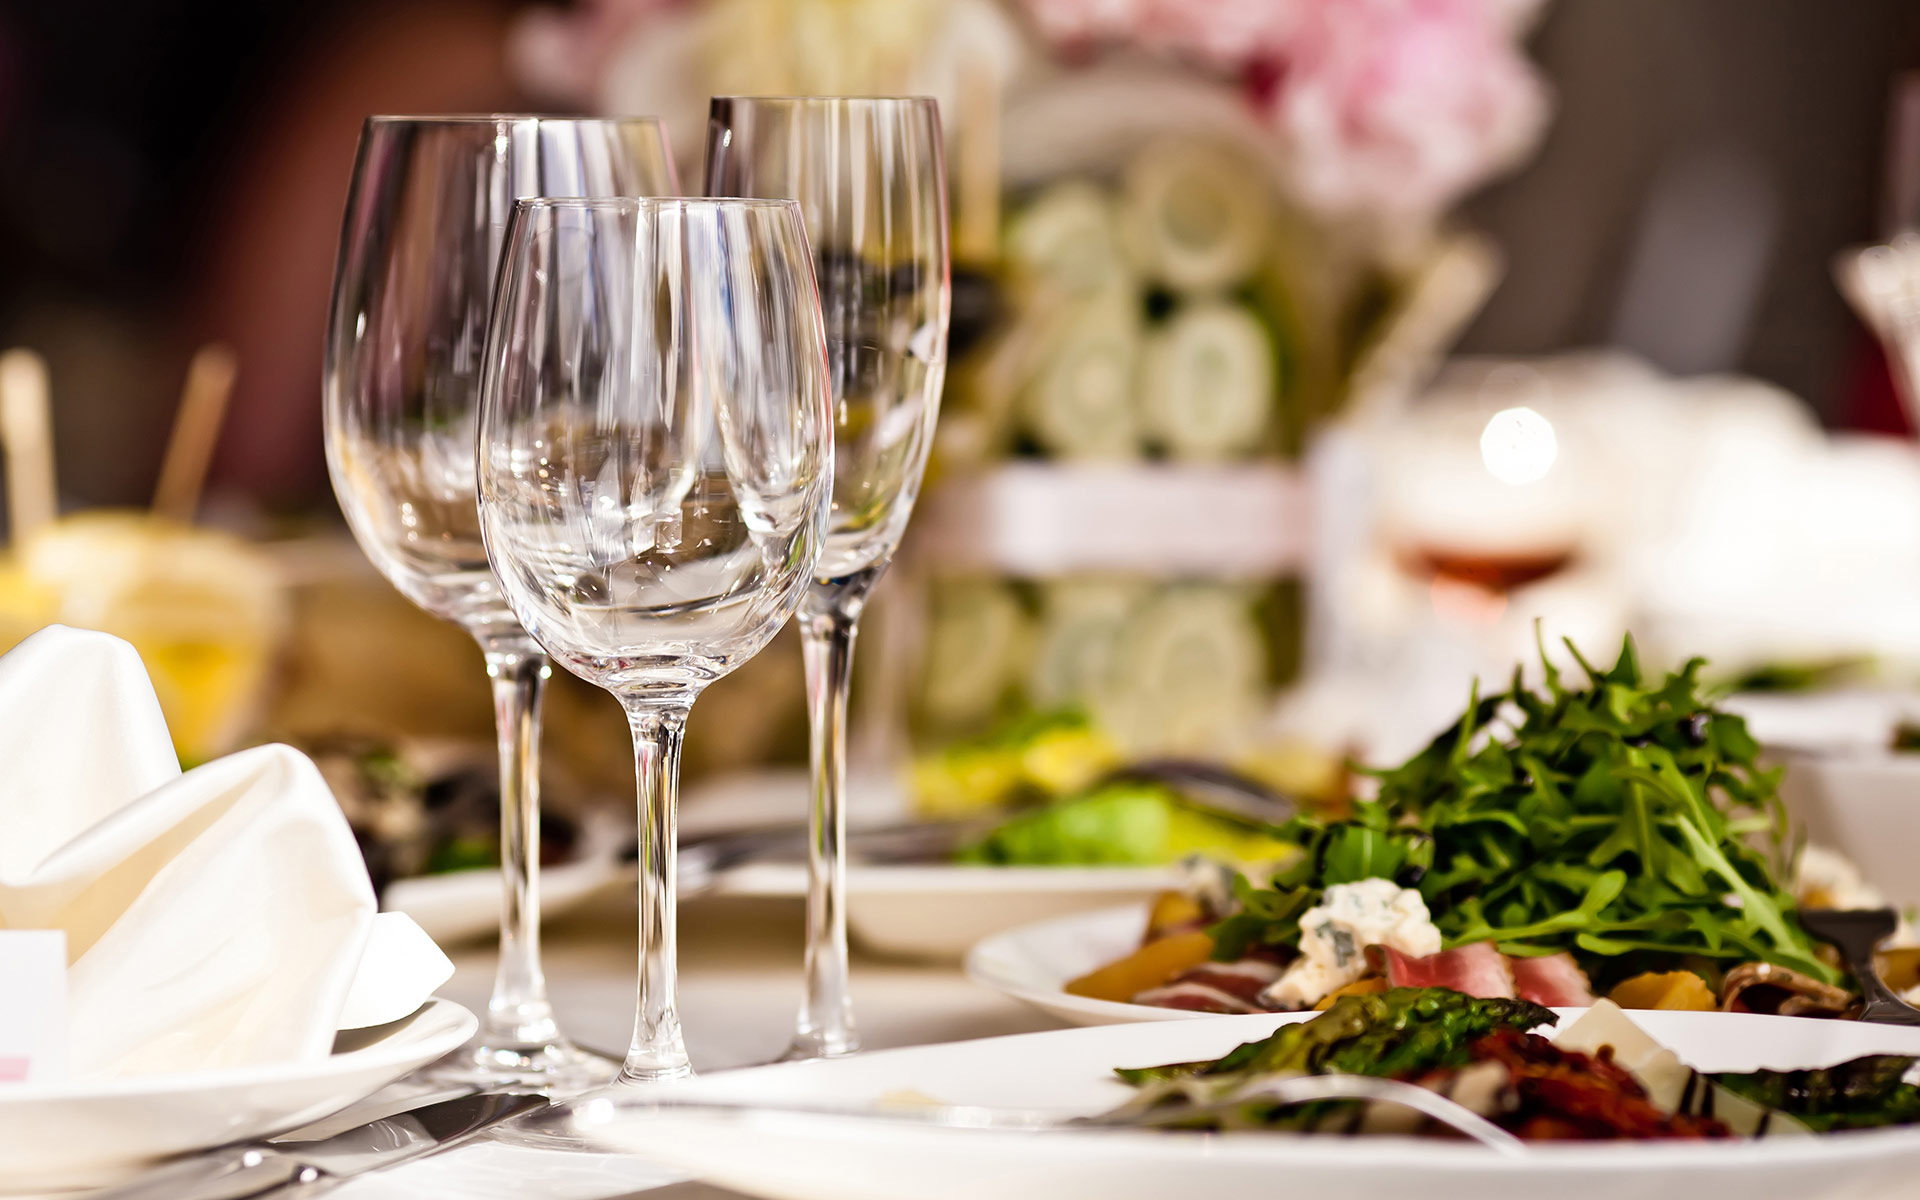 Red Tag Caterers, Top 1 catering company in Ludhiana ,best caterers in Ludhiana, caterers in Ludhiana, best catering service in Ludhiana, healthy food in Ludhiana,